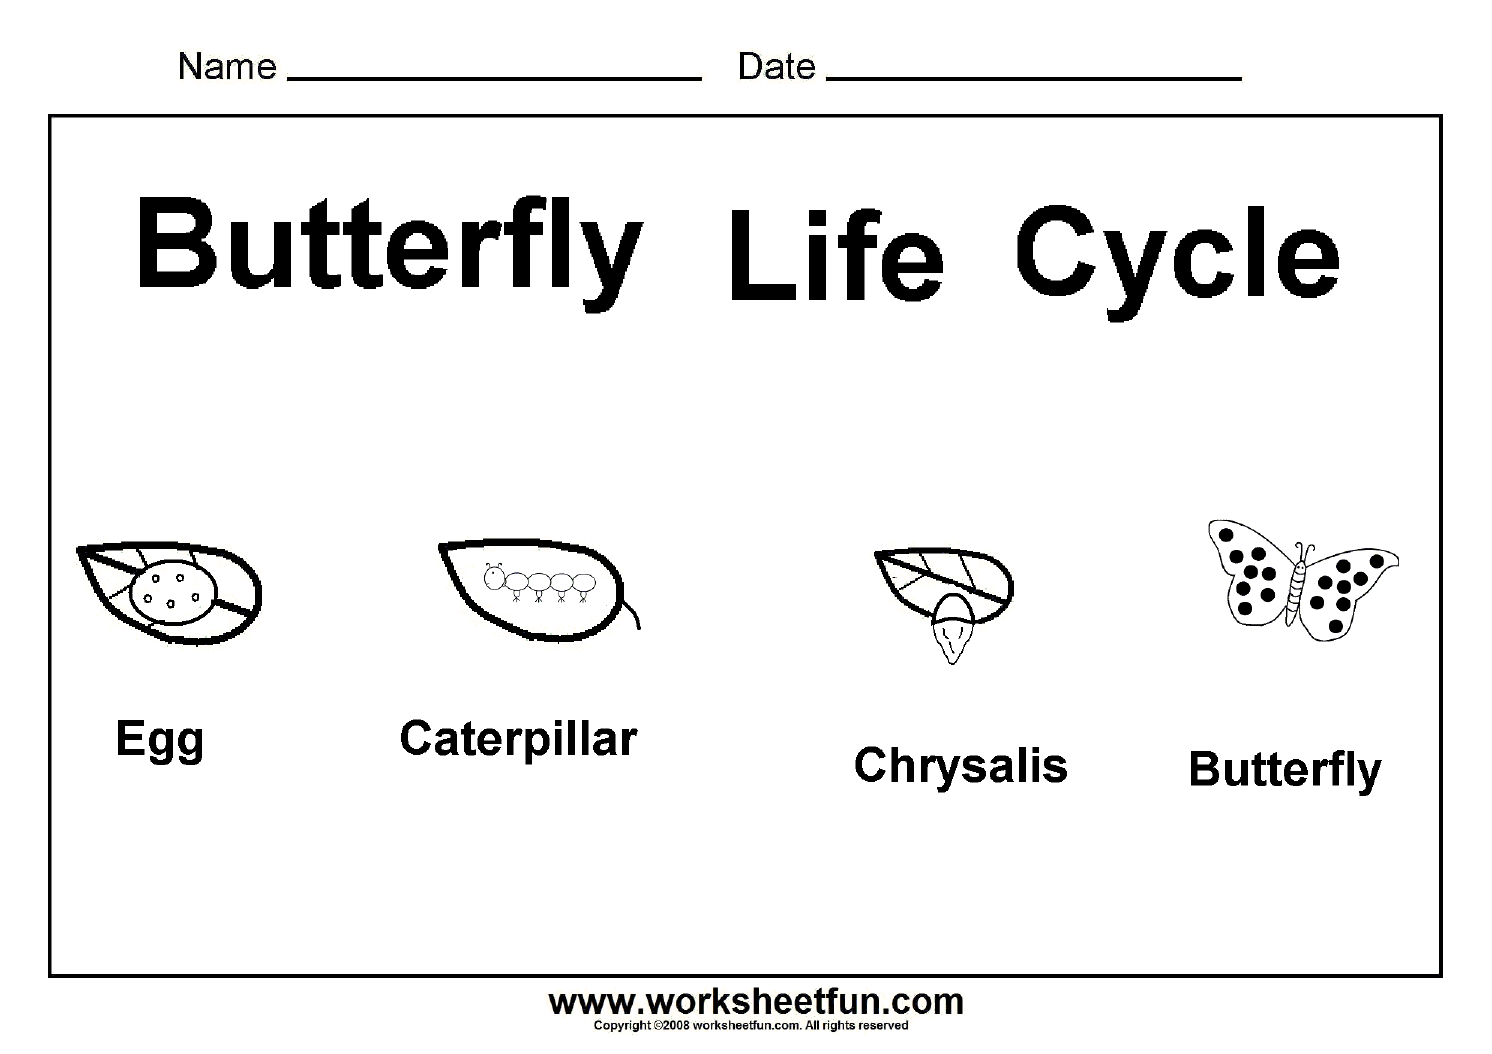 Butterfly Life Cycle Worksheet Images u0026 Pictures - Becuo